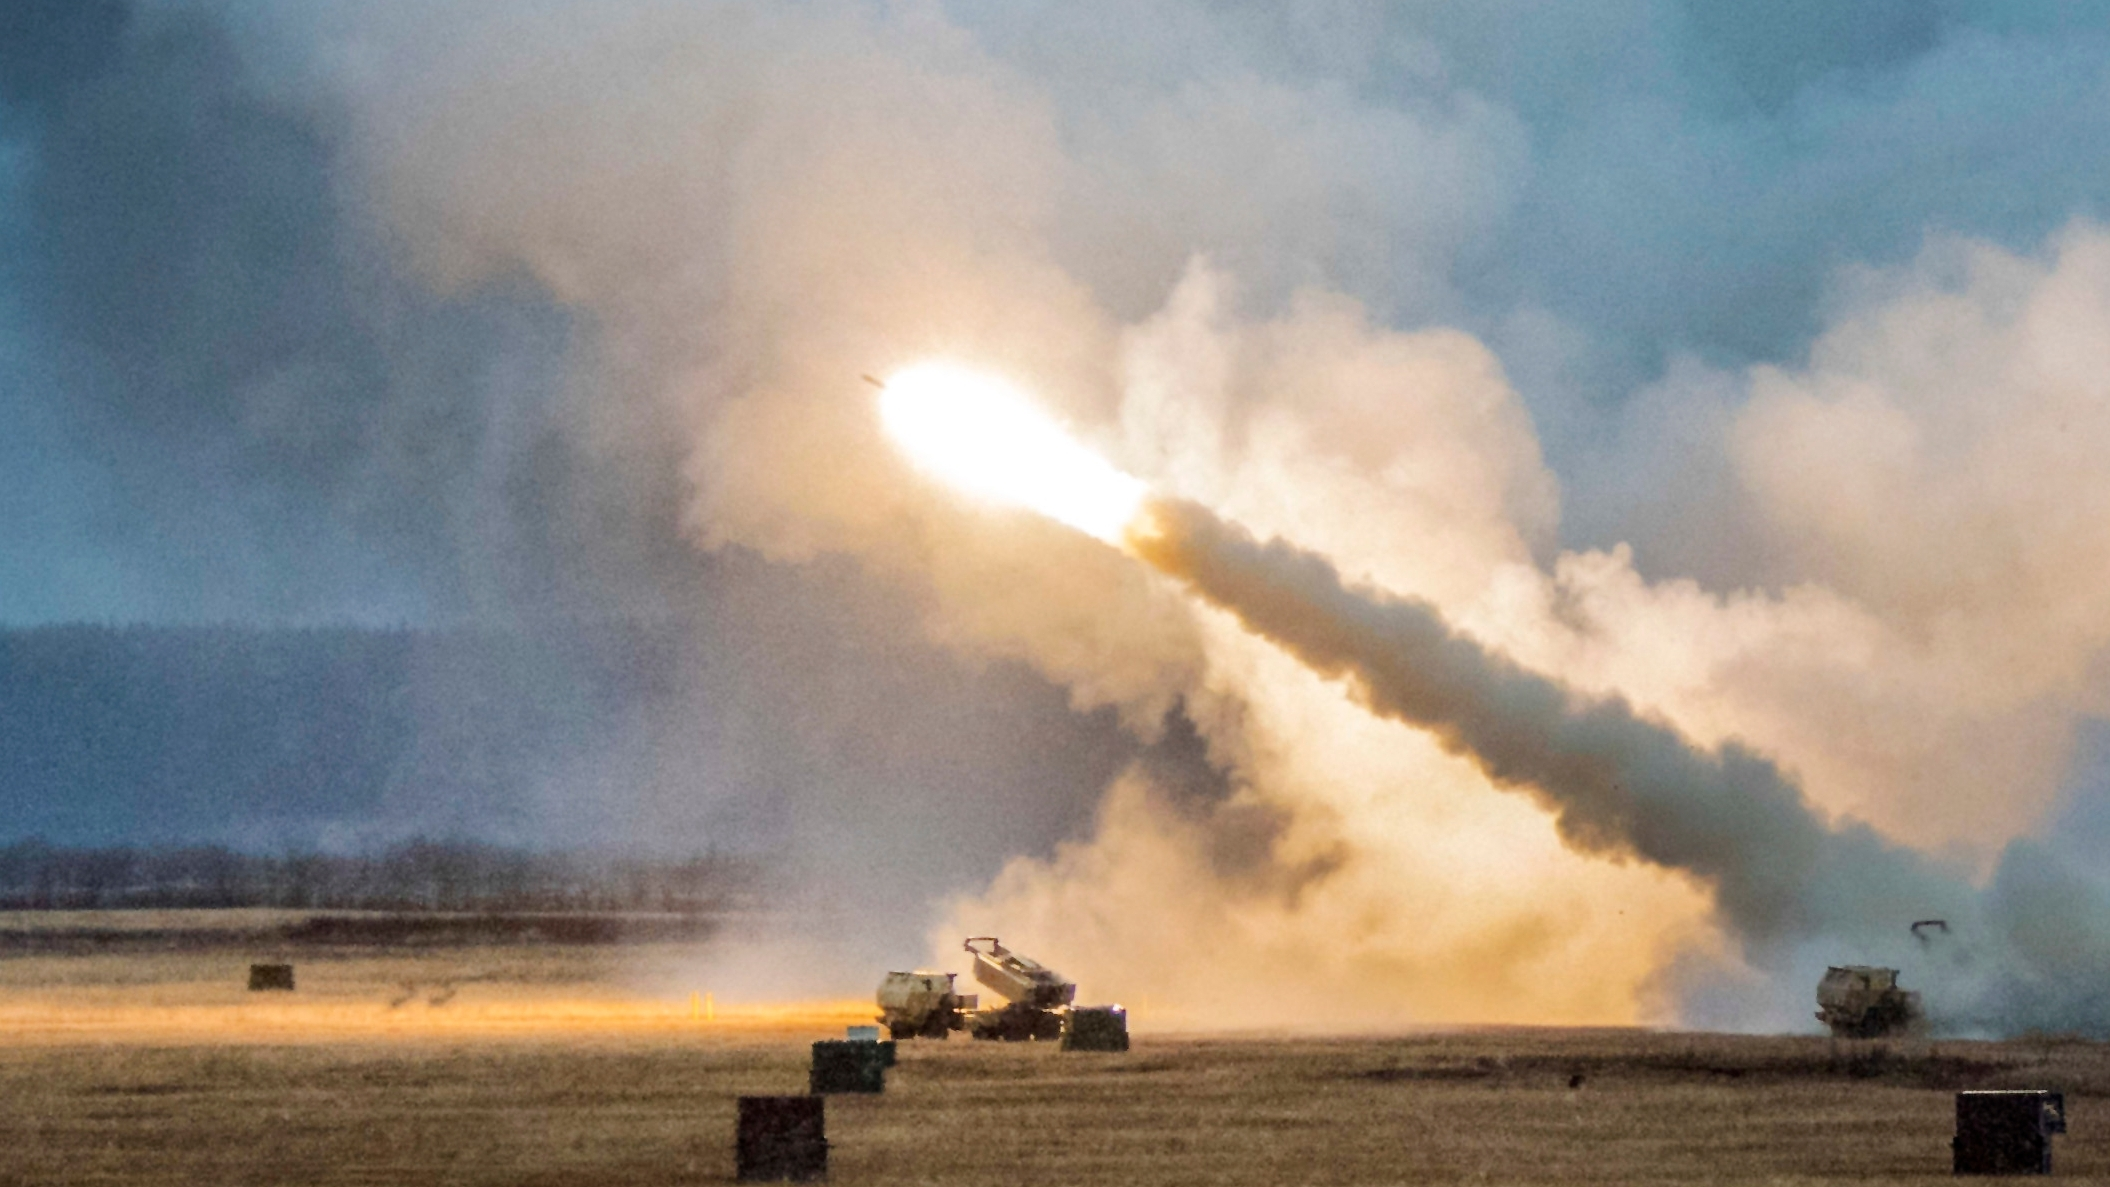 Army Soldiers assigned to Alpha Battery, 3rd Battalion, 27th Field Artillery Regiment (HIMARS), 18th Field Artillery Regiment, Fort Bragg, N.C., fire a M142 High Mobility Artillery Rocket System at Fort Greely, Alaska, Oct. 19, 2018, during Red Flag-Alaska 19-1. (A1C Jonathan Valdes Montijo/Air Force)